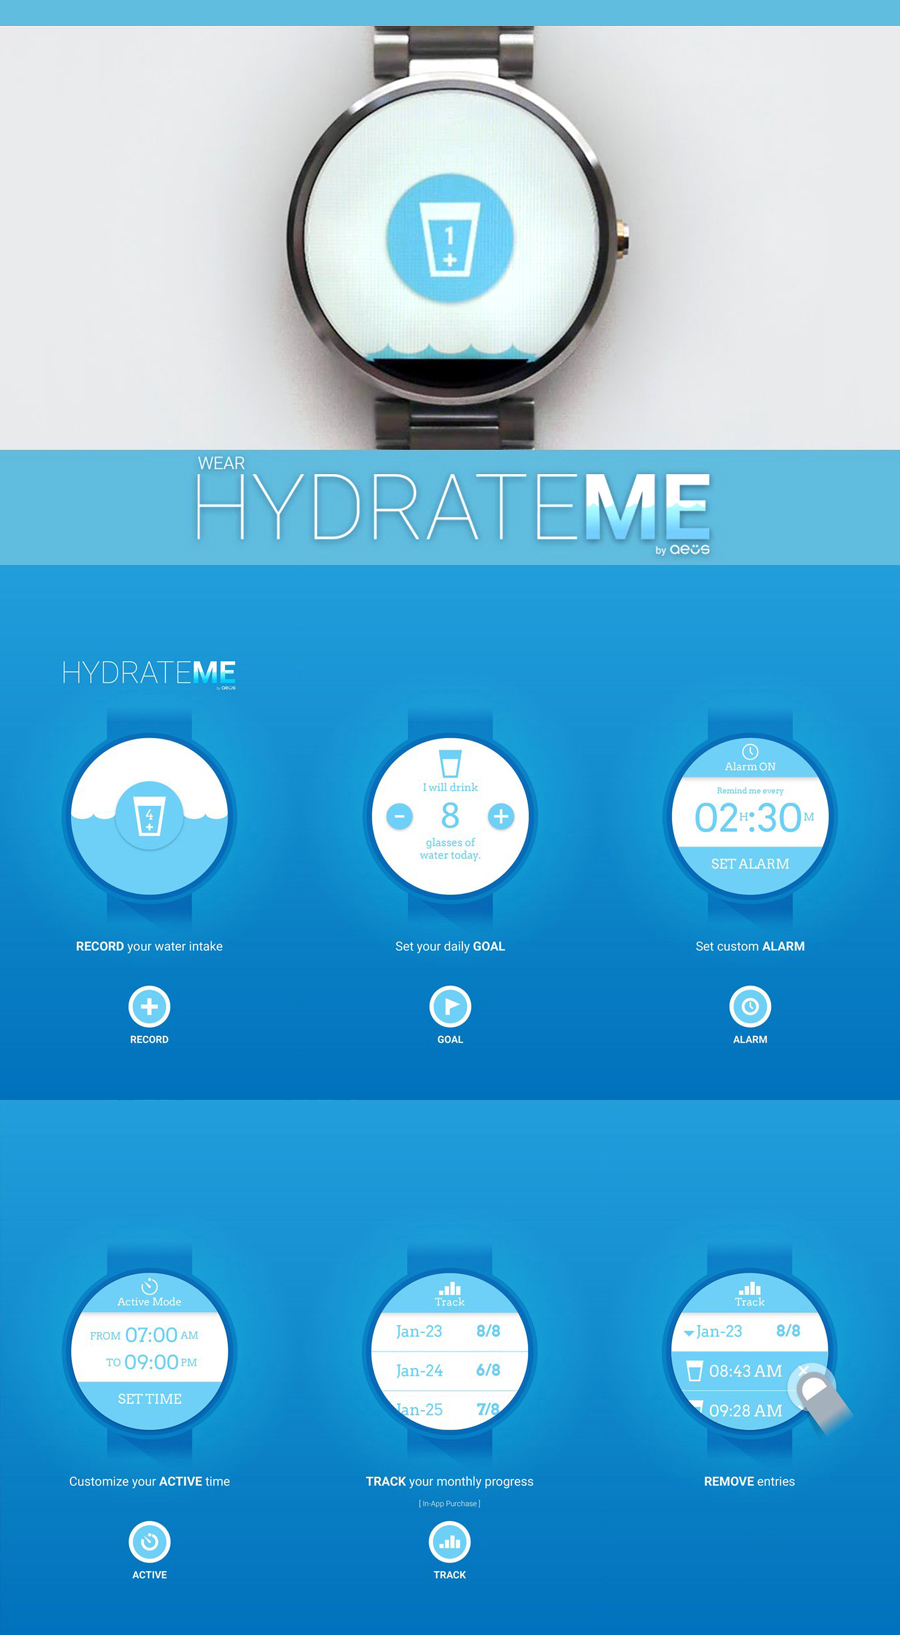 Hydrate Me